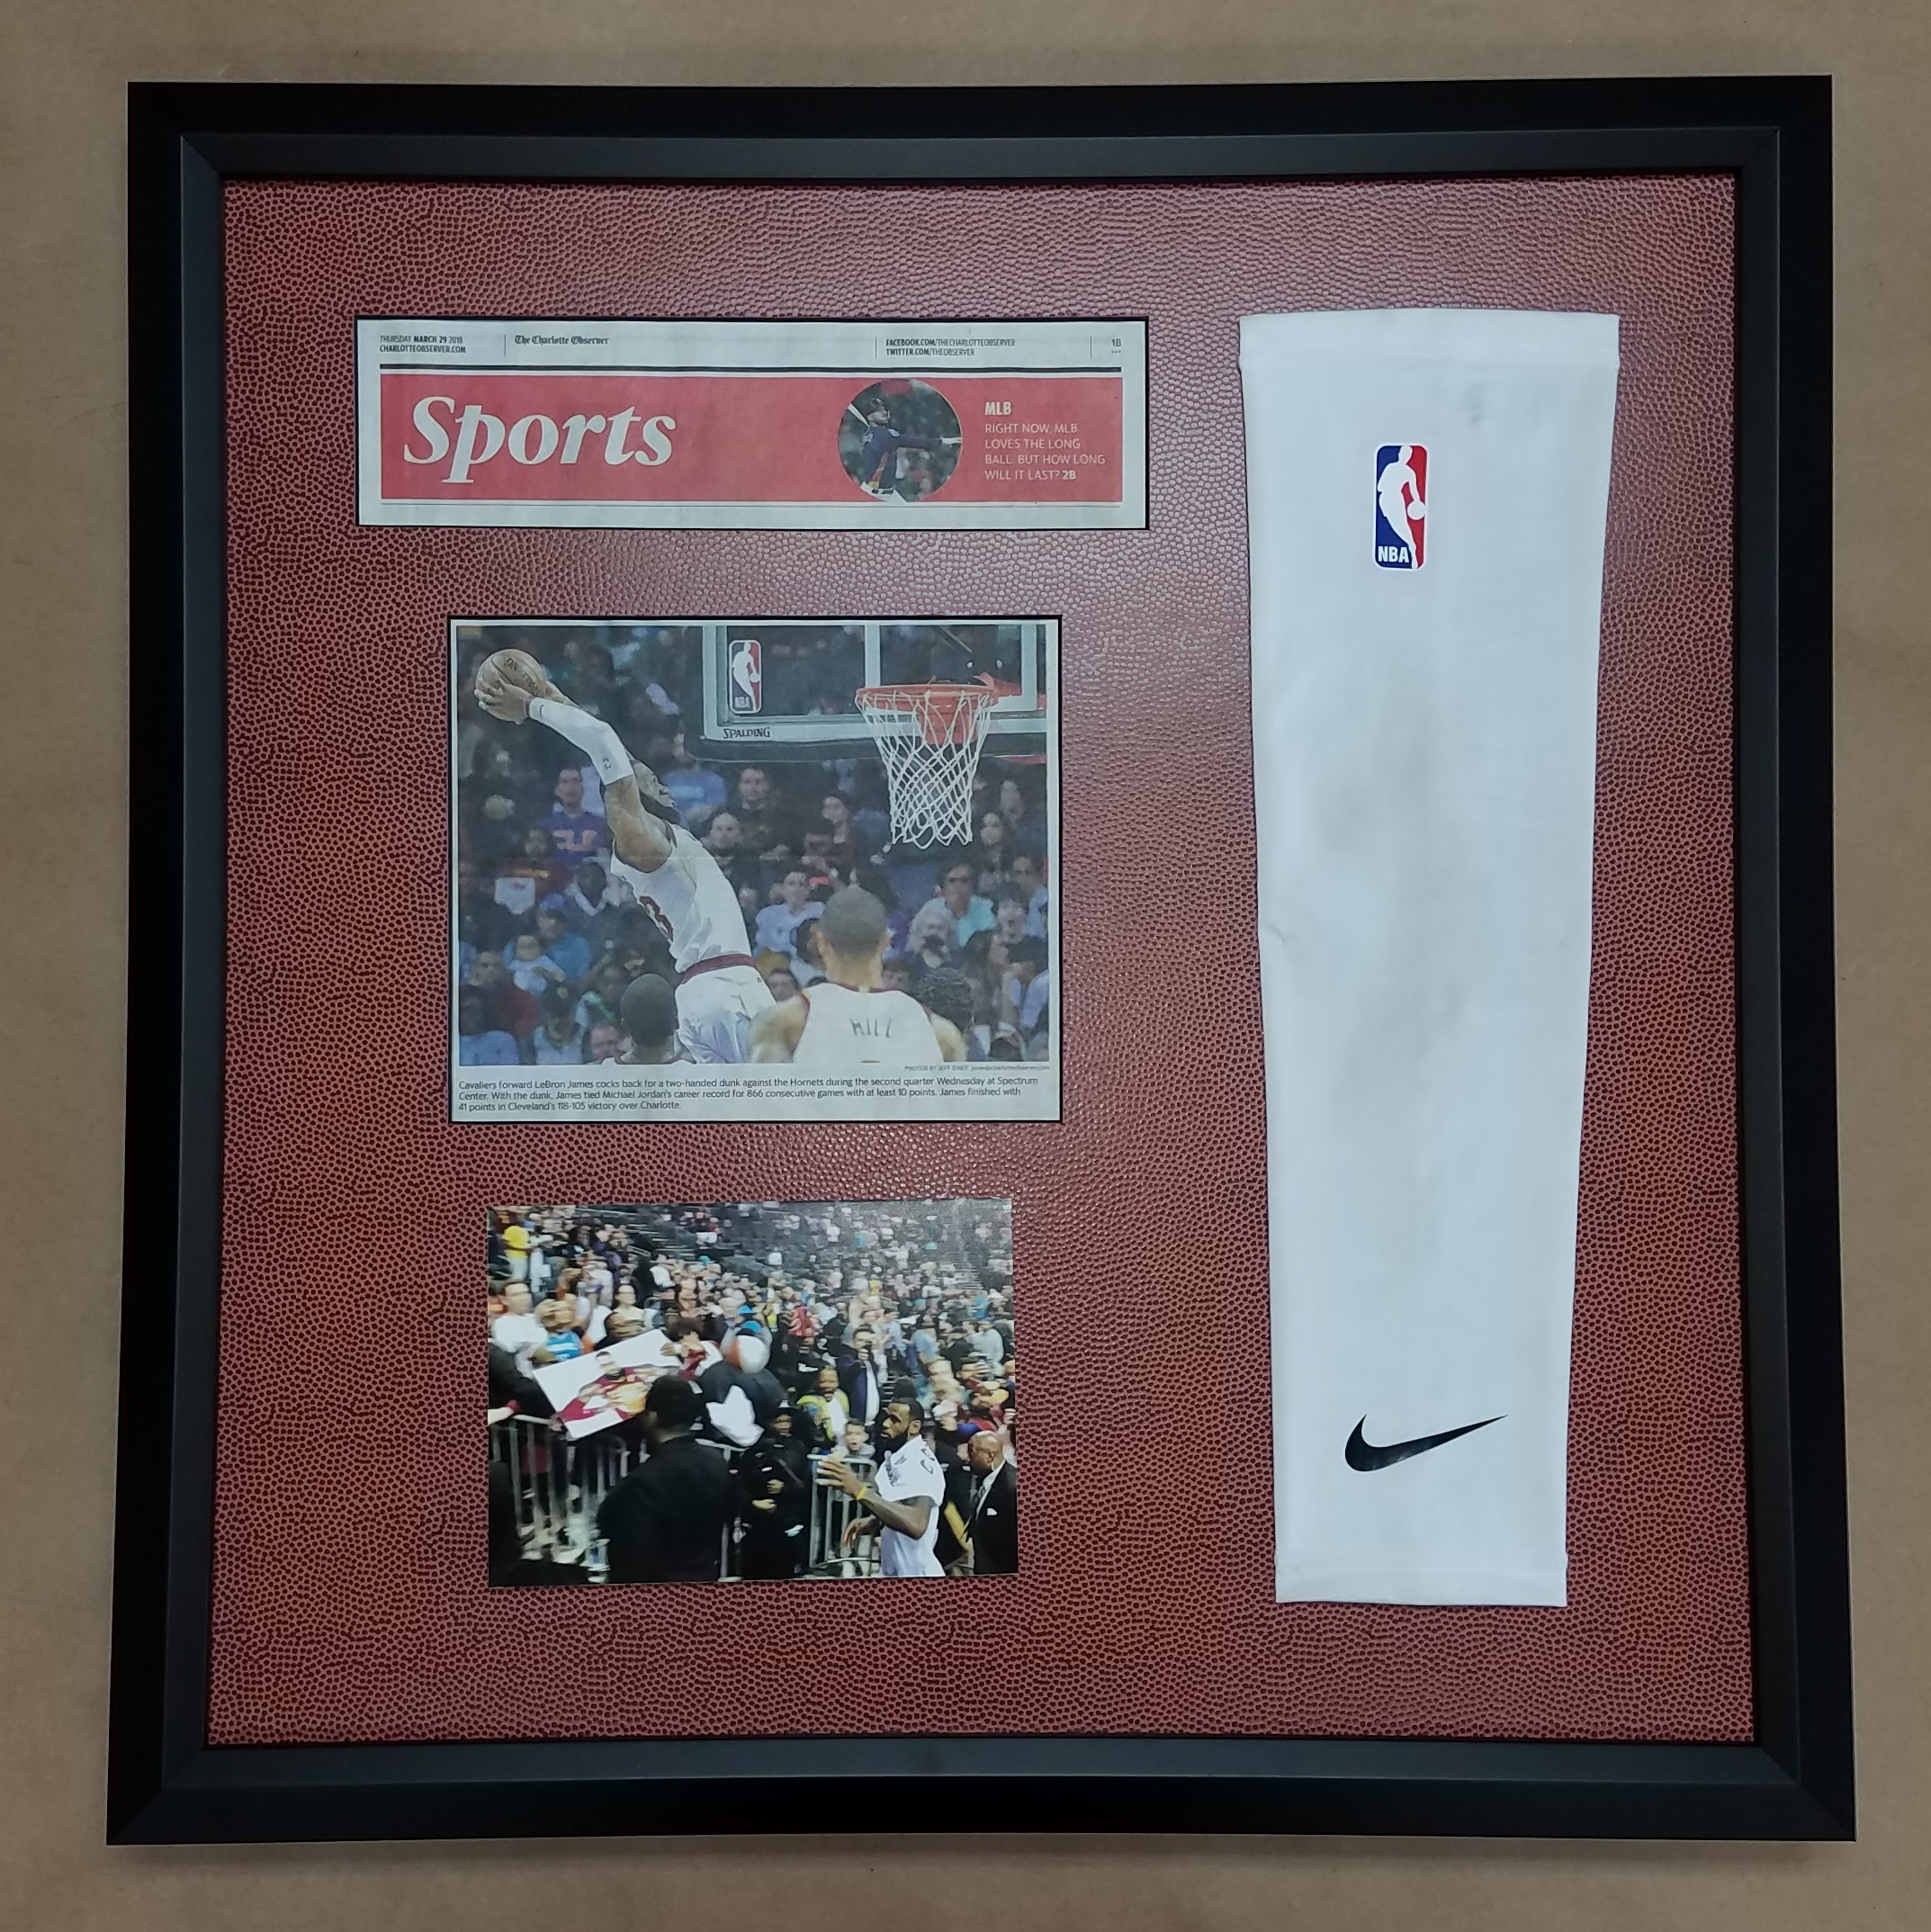 Columbia frame shop quality custom picture framing filed under display case framed sports memorabilia of the day tagged with framed basketball jersey sports memorabilia solutioingenieria Image collections